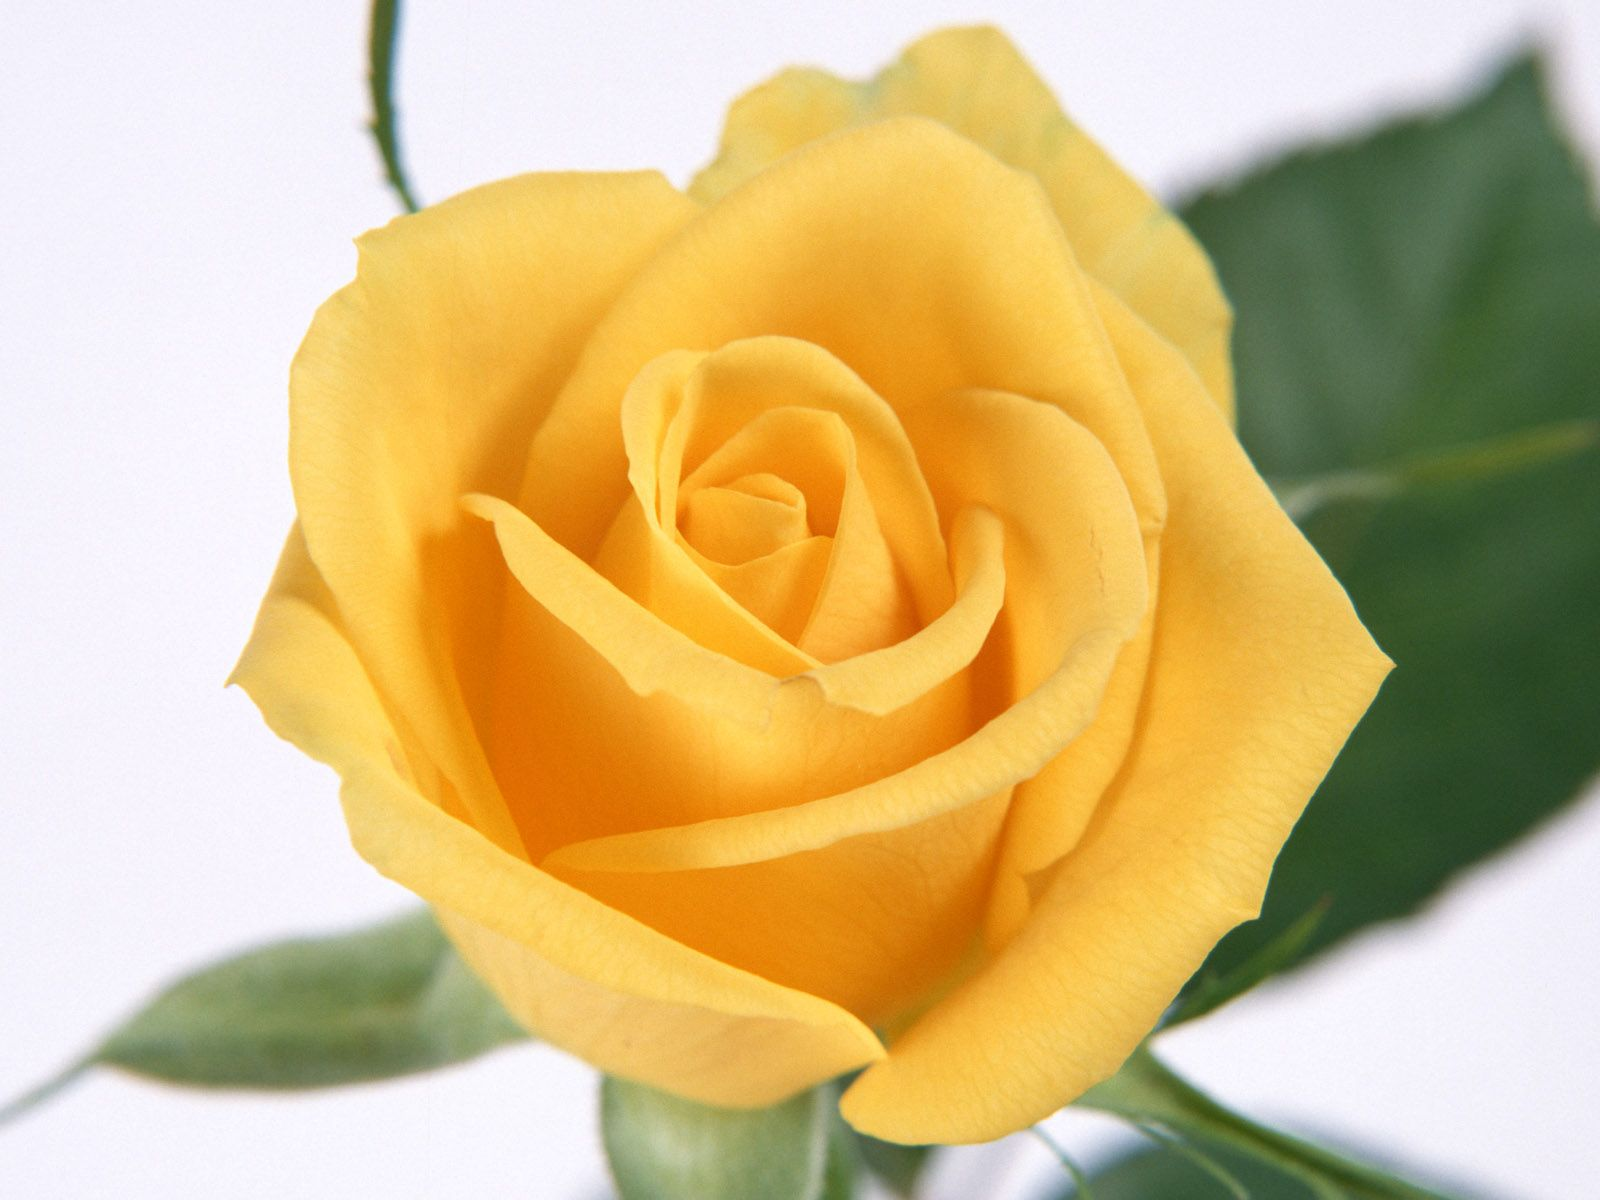 Items That Are The Color Yellow Interested Matters January 2011 Rose Flower Wallpaper Yellow Roses Yellow Rose Petals